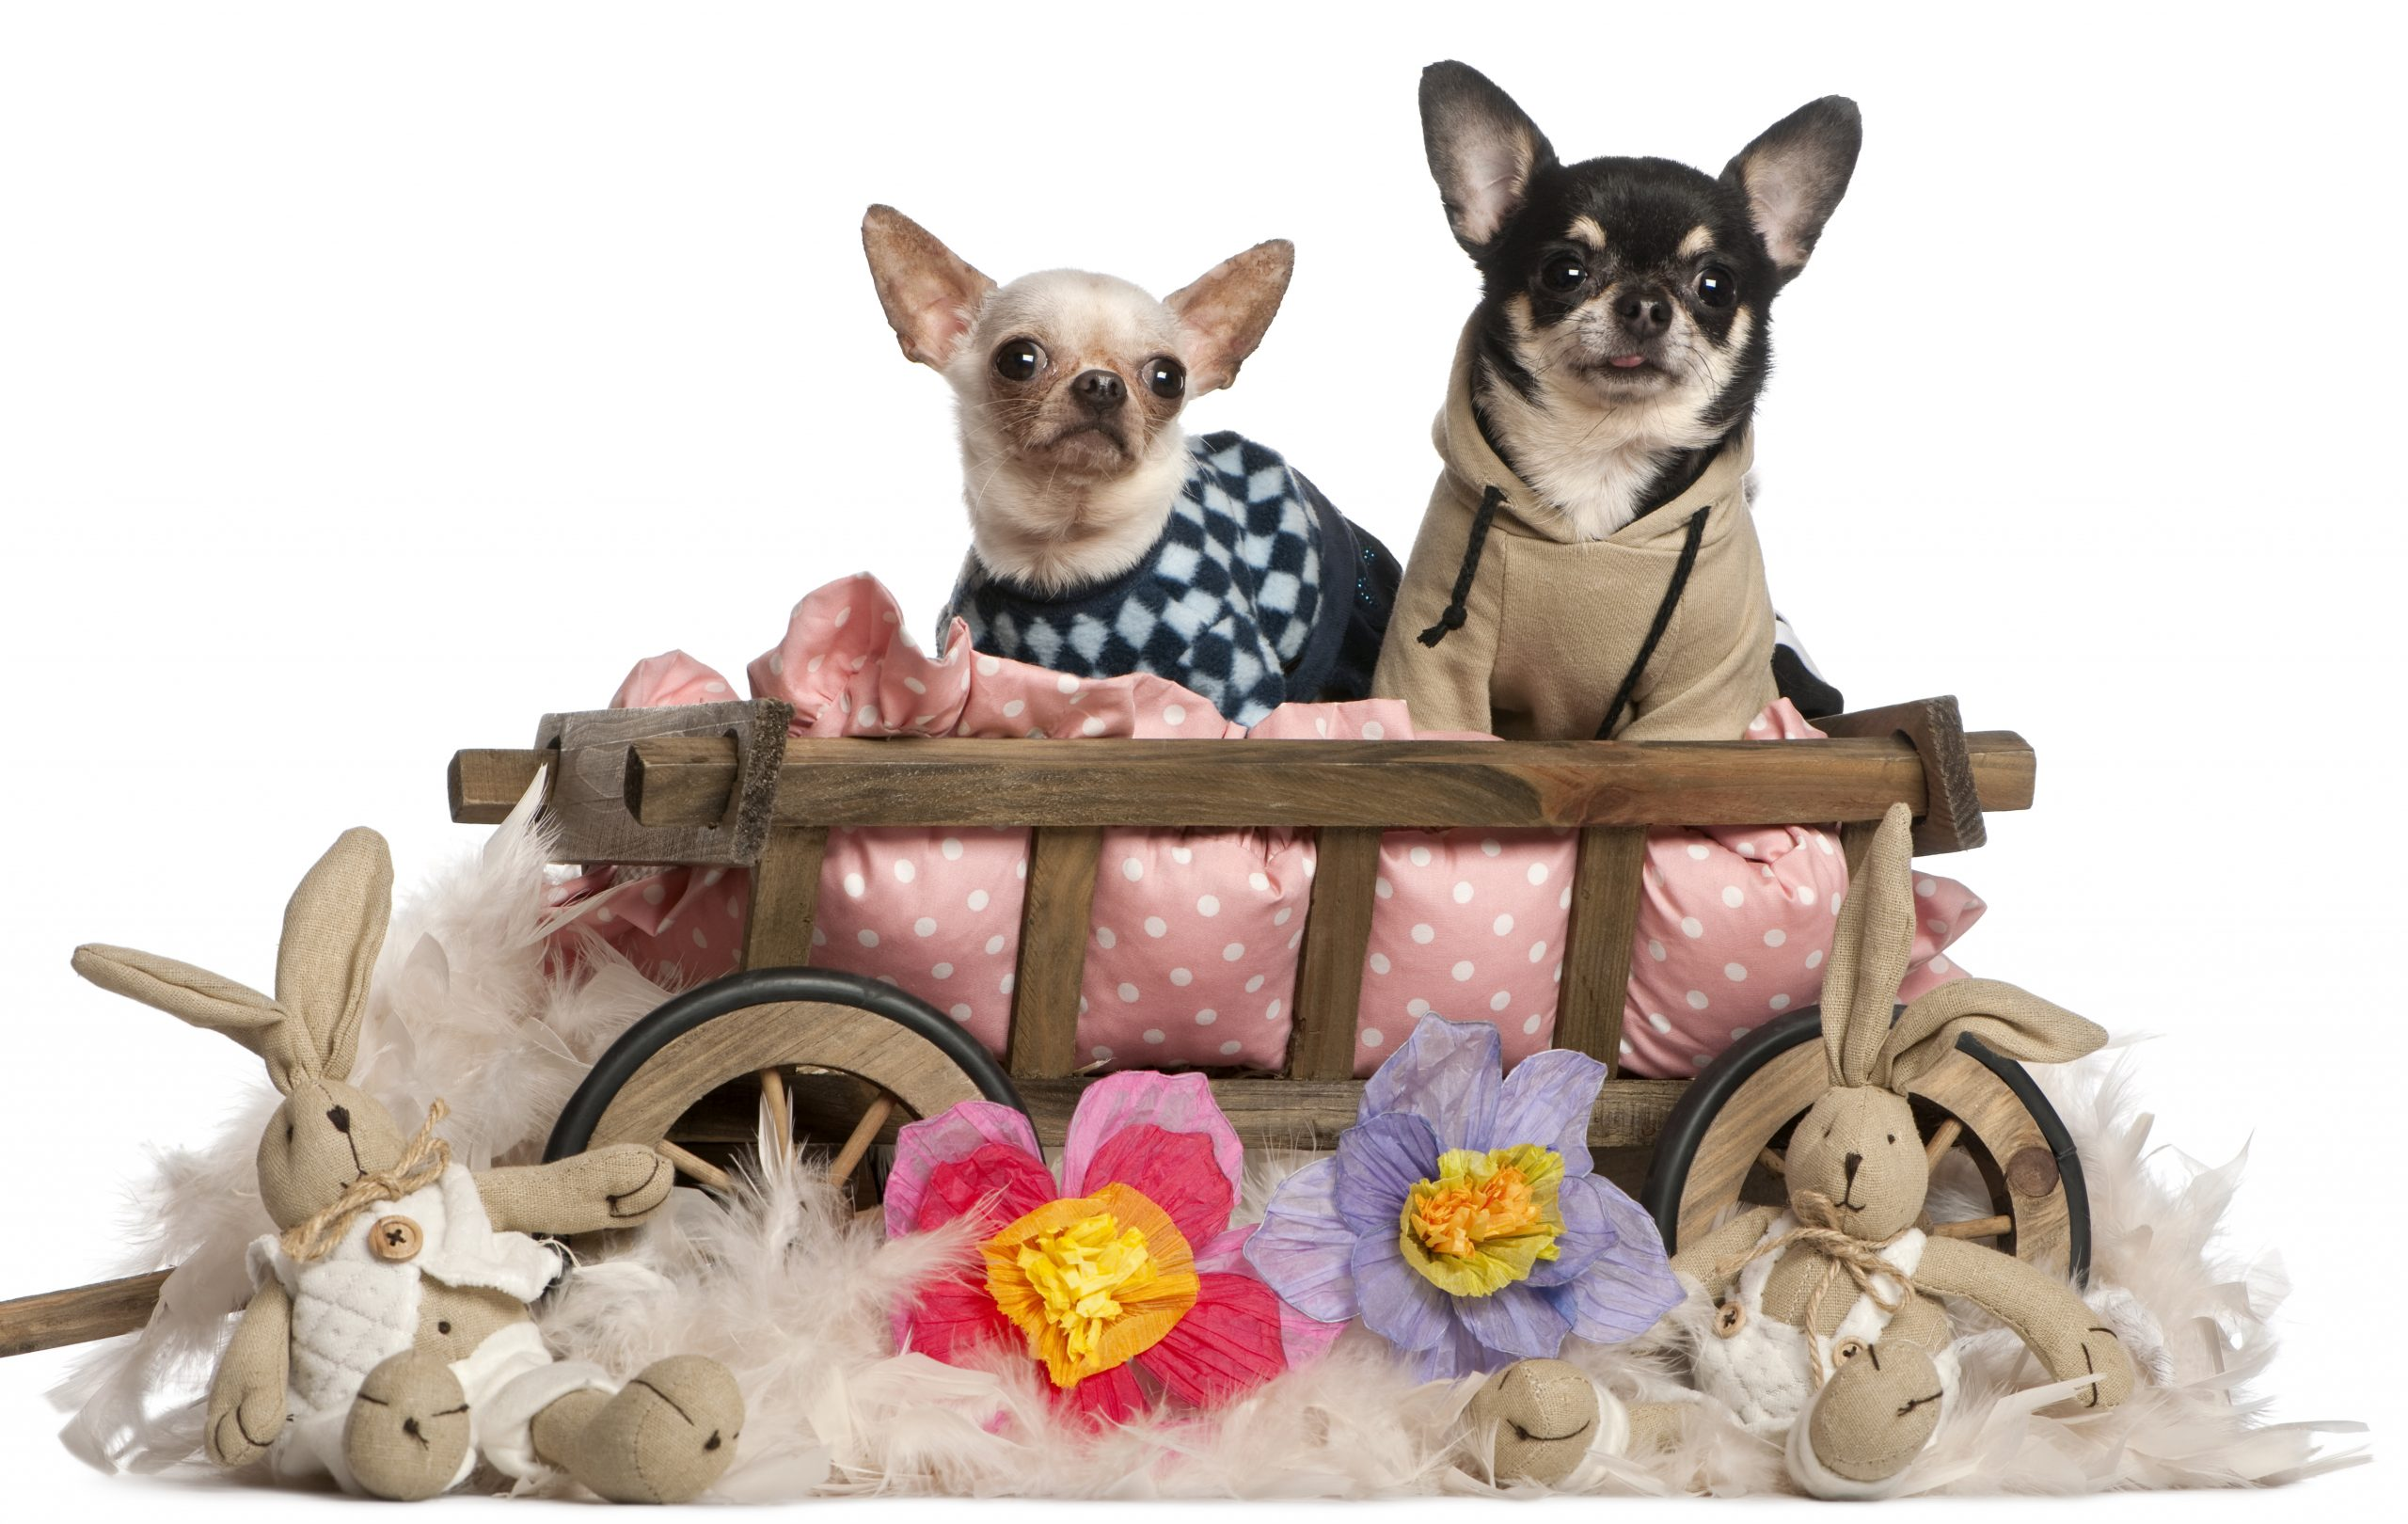 Chihuahuas sitting in dog bed wagon with stuffed animals in front of white background